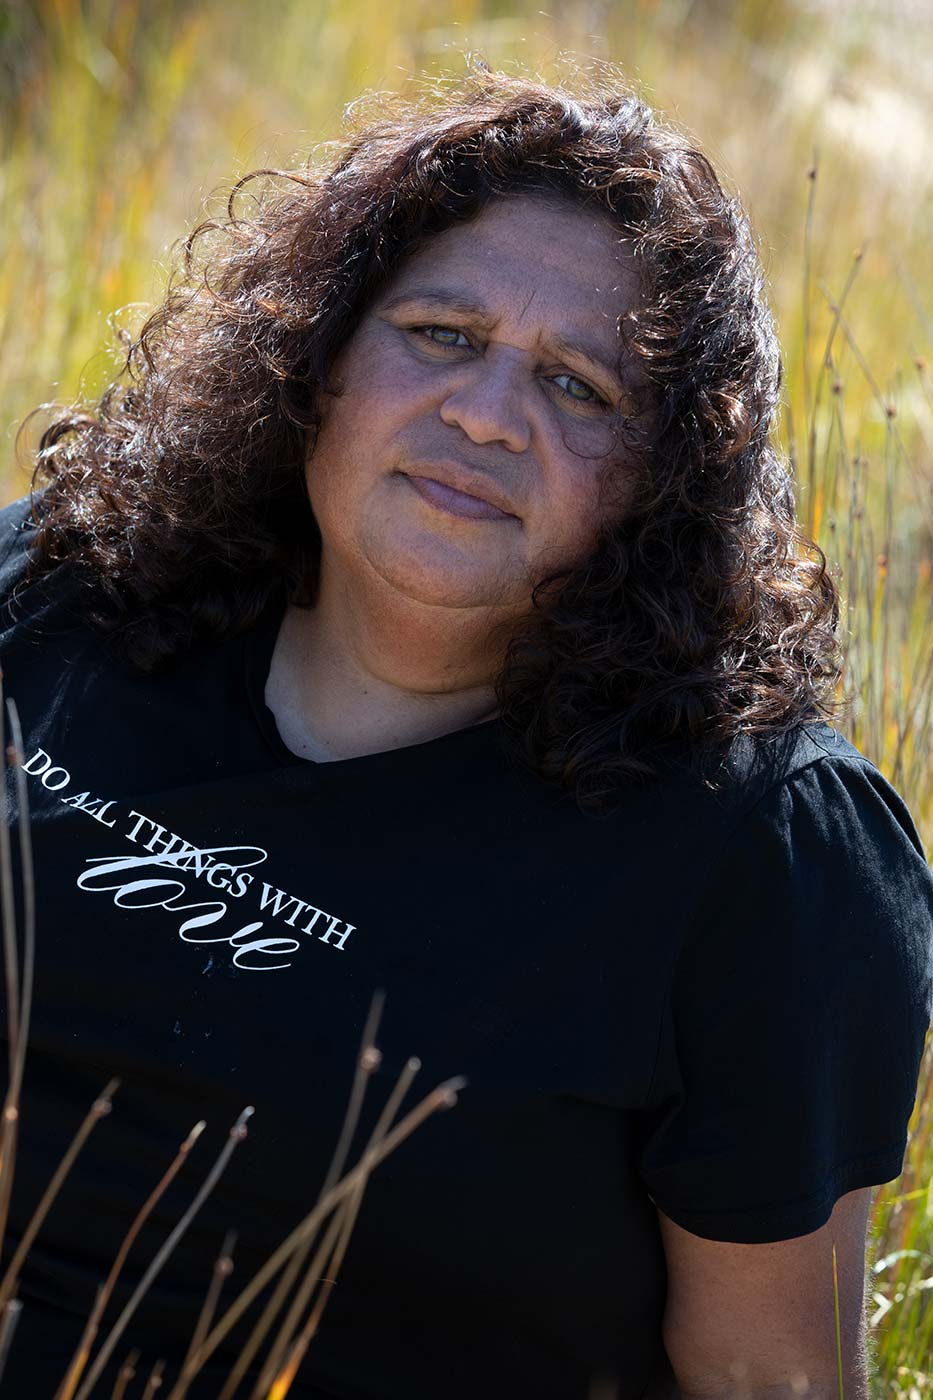 A portrait photo of Cheryl Davison, Aboriginal Creative Producer at Four Winds Festivals. - click to view larger image